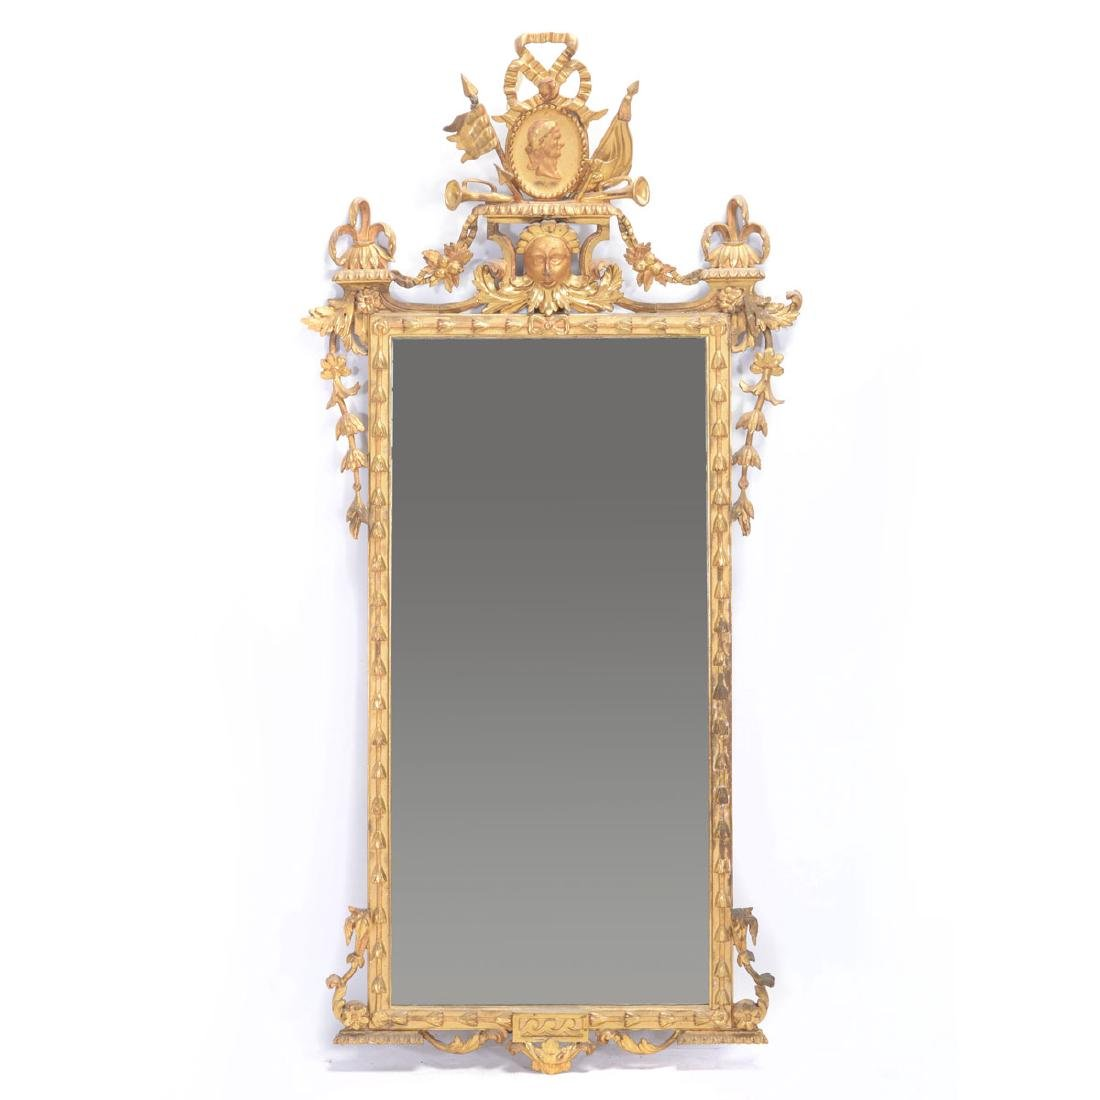 Continental Giltwood Neoclassical Mirror, Late 18th